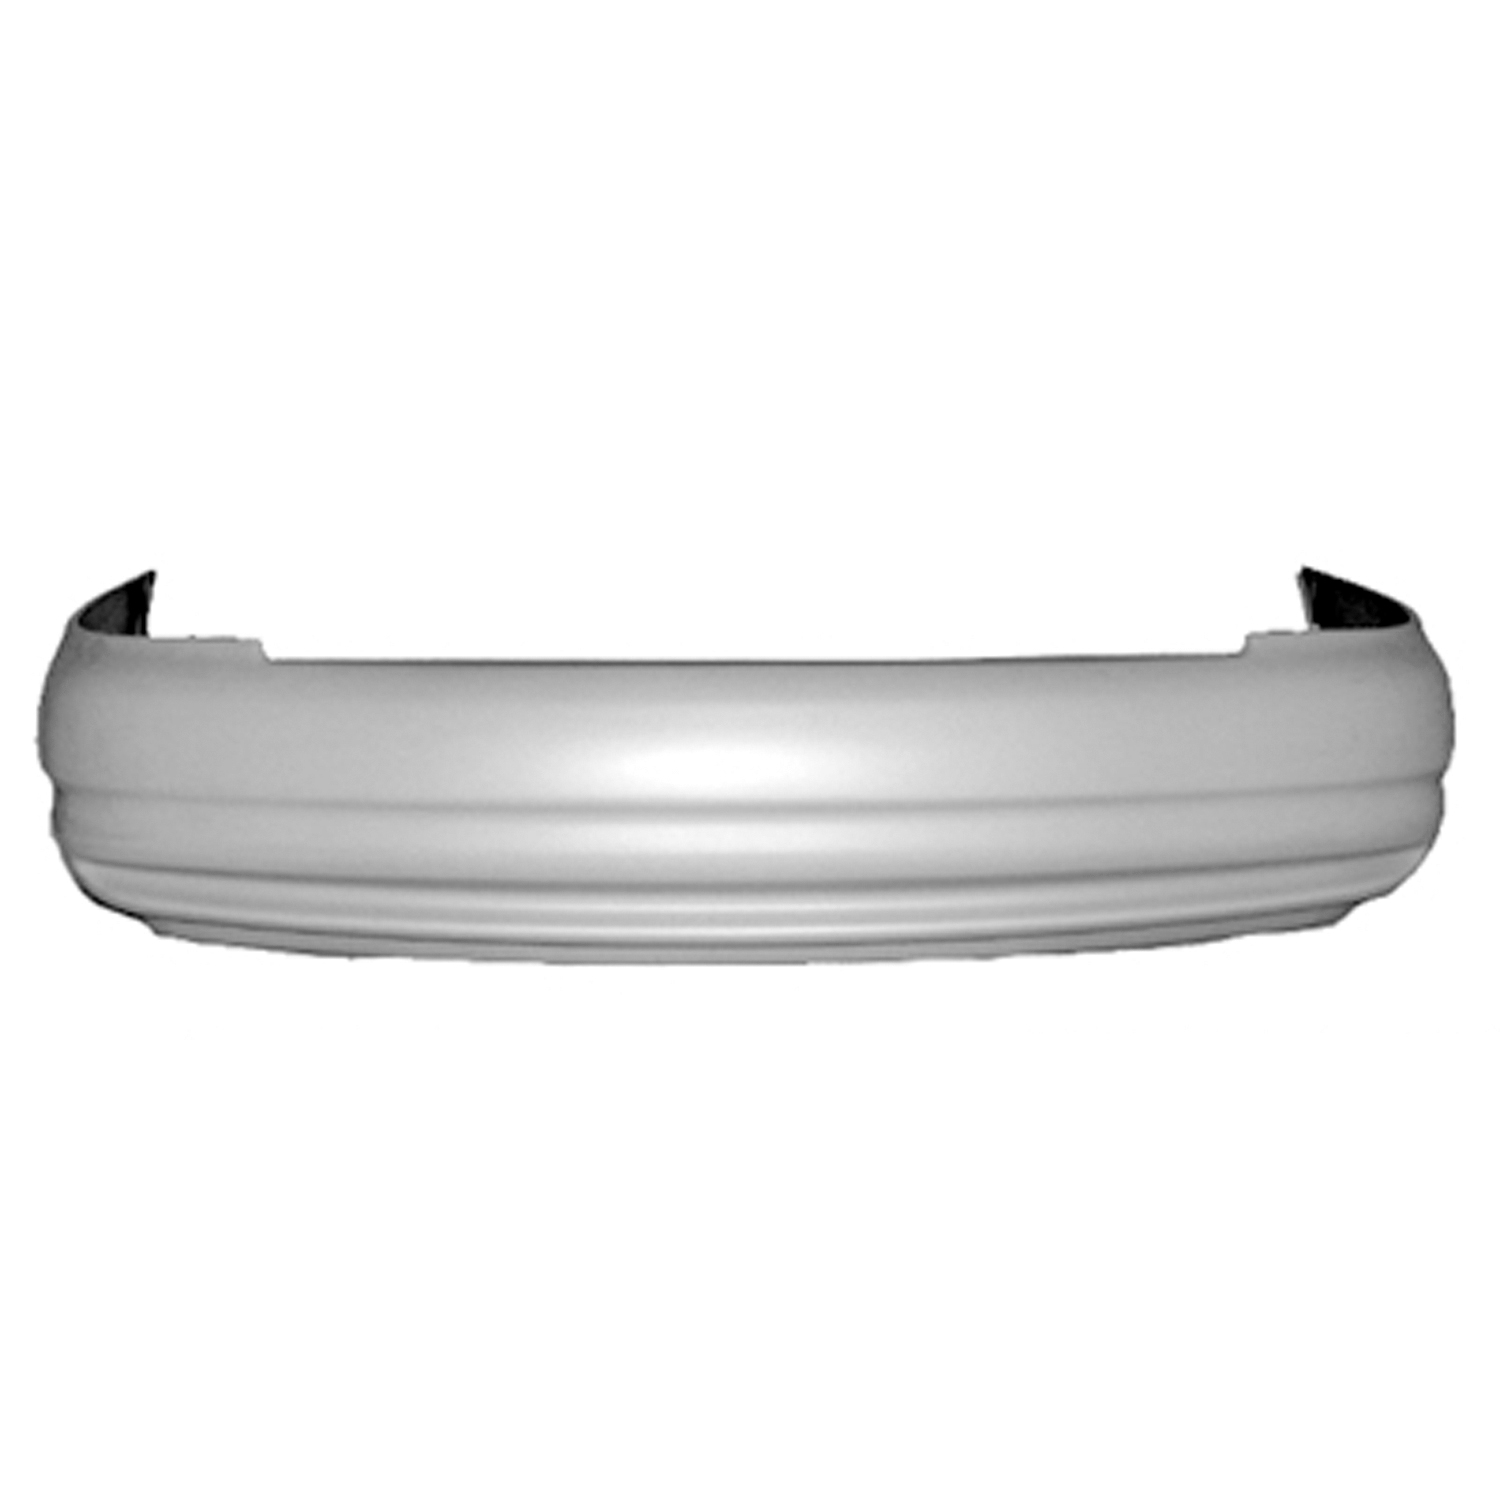 hight resolution of details about fo1100274 rear bumper cover for 98 00 ford contour mercury mystique